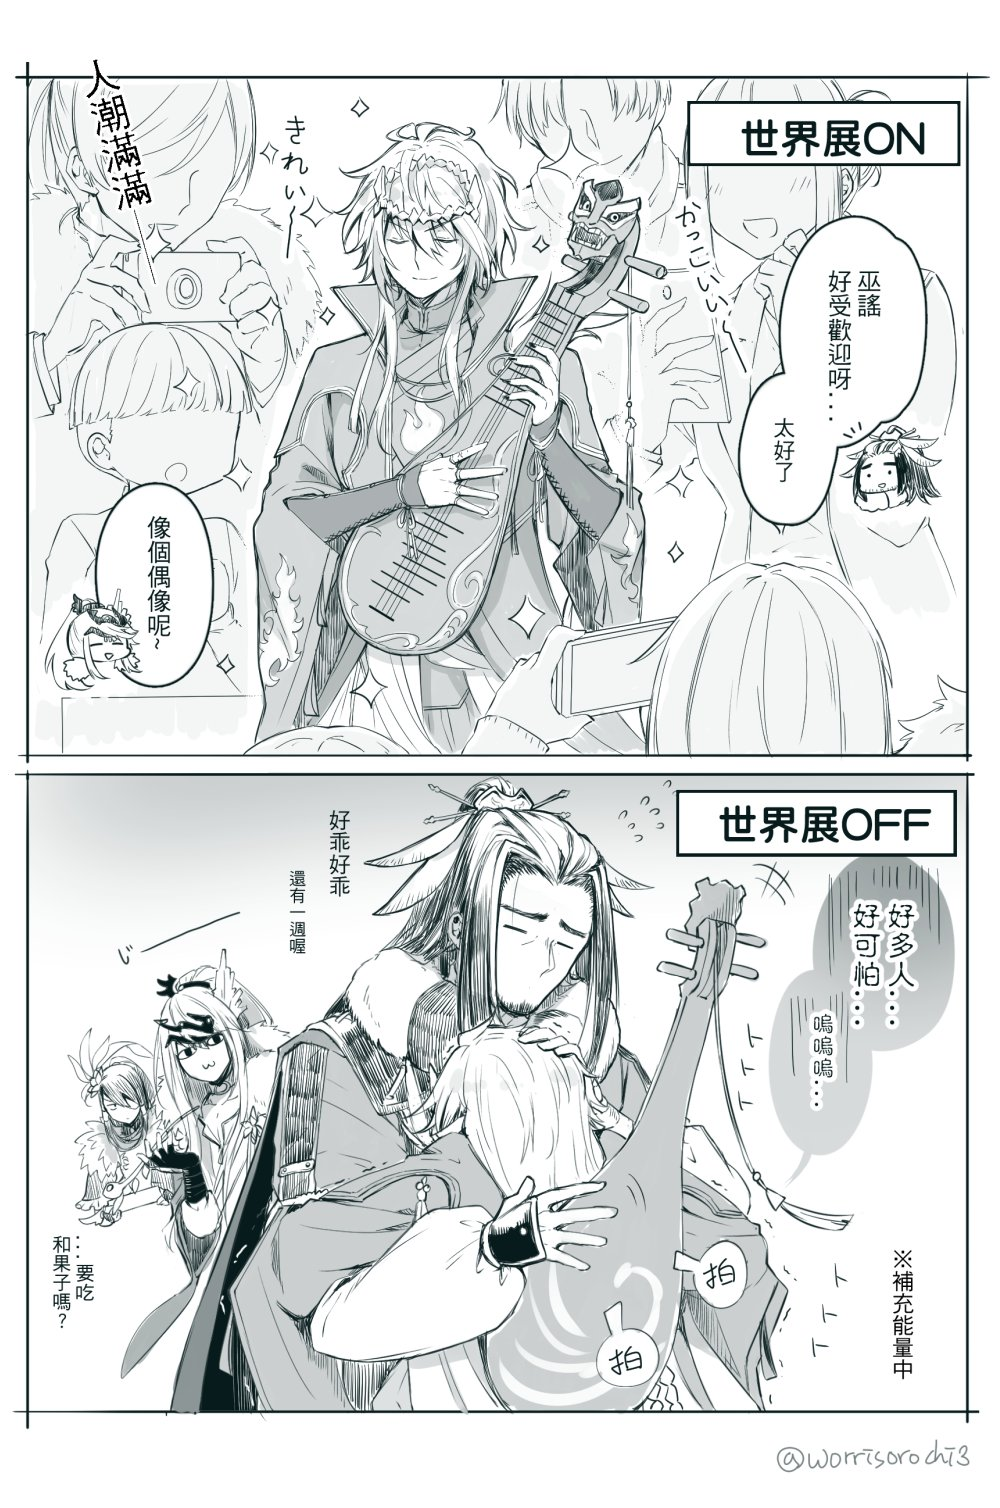 /\/\/\ :3 camera comic highres instrument lang_wu_yao lin_xue_ya long_hair monochrome music pipe playing_instrument sha_wu_sheng shang_bu_huan sparkle thunderbolt_fantasy translation_request twitter_username worrisorochi yin_lei_ling_ya